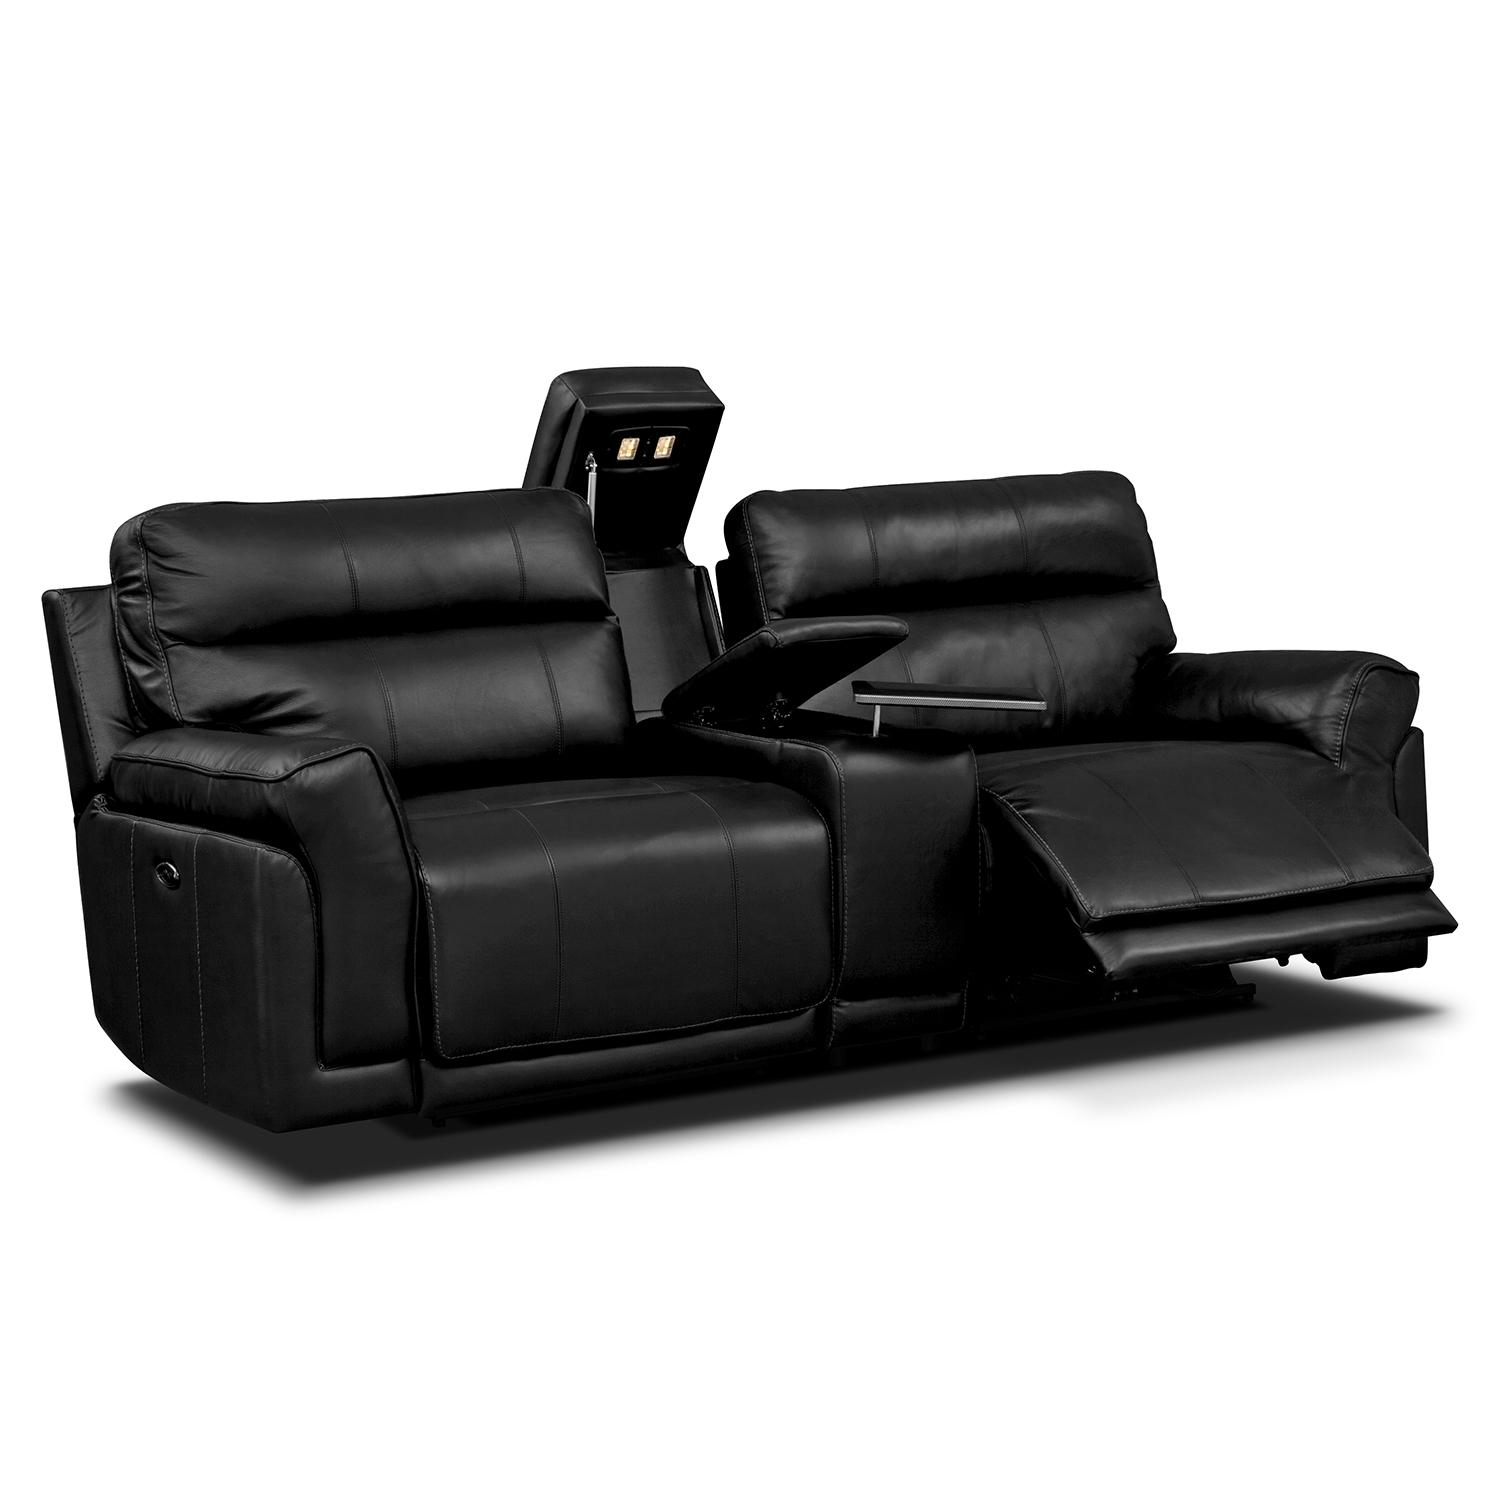 New Double Recliner Sofa With Console 17 Sofas And Couches Set For Sofas With Console (Image 9 of 20)